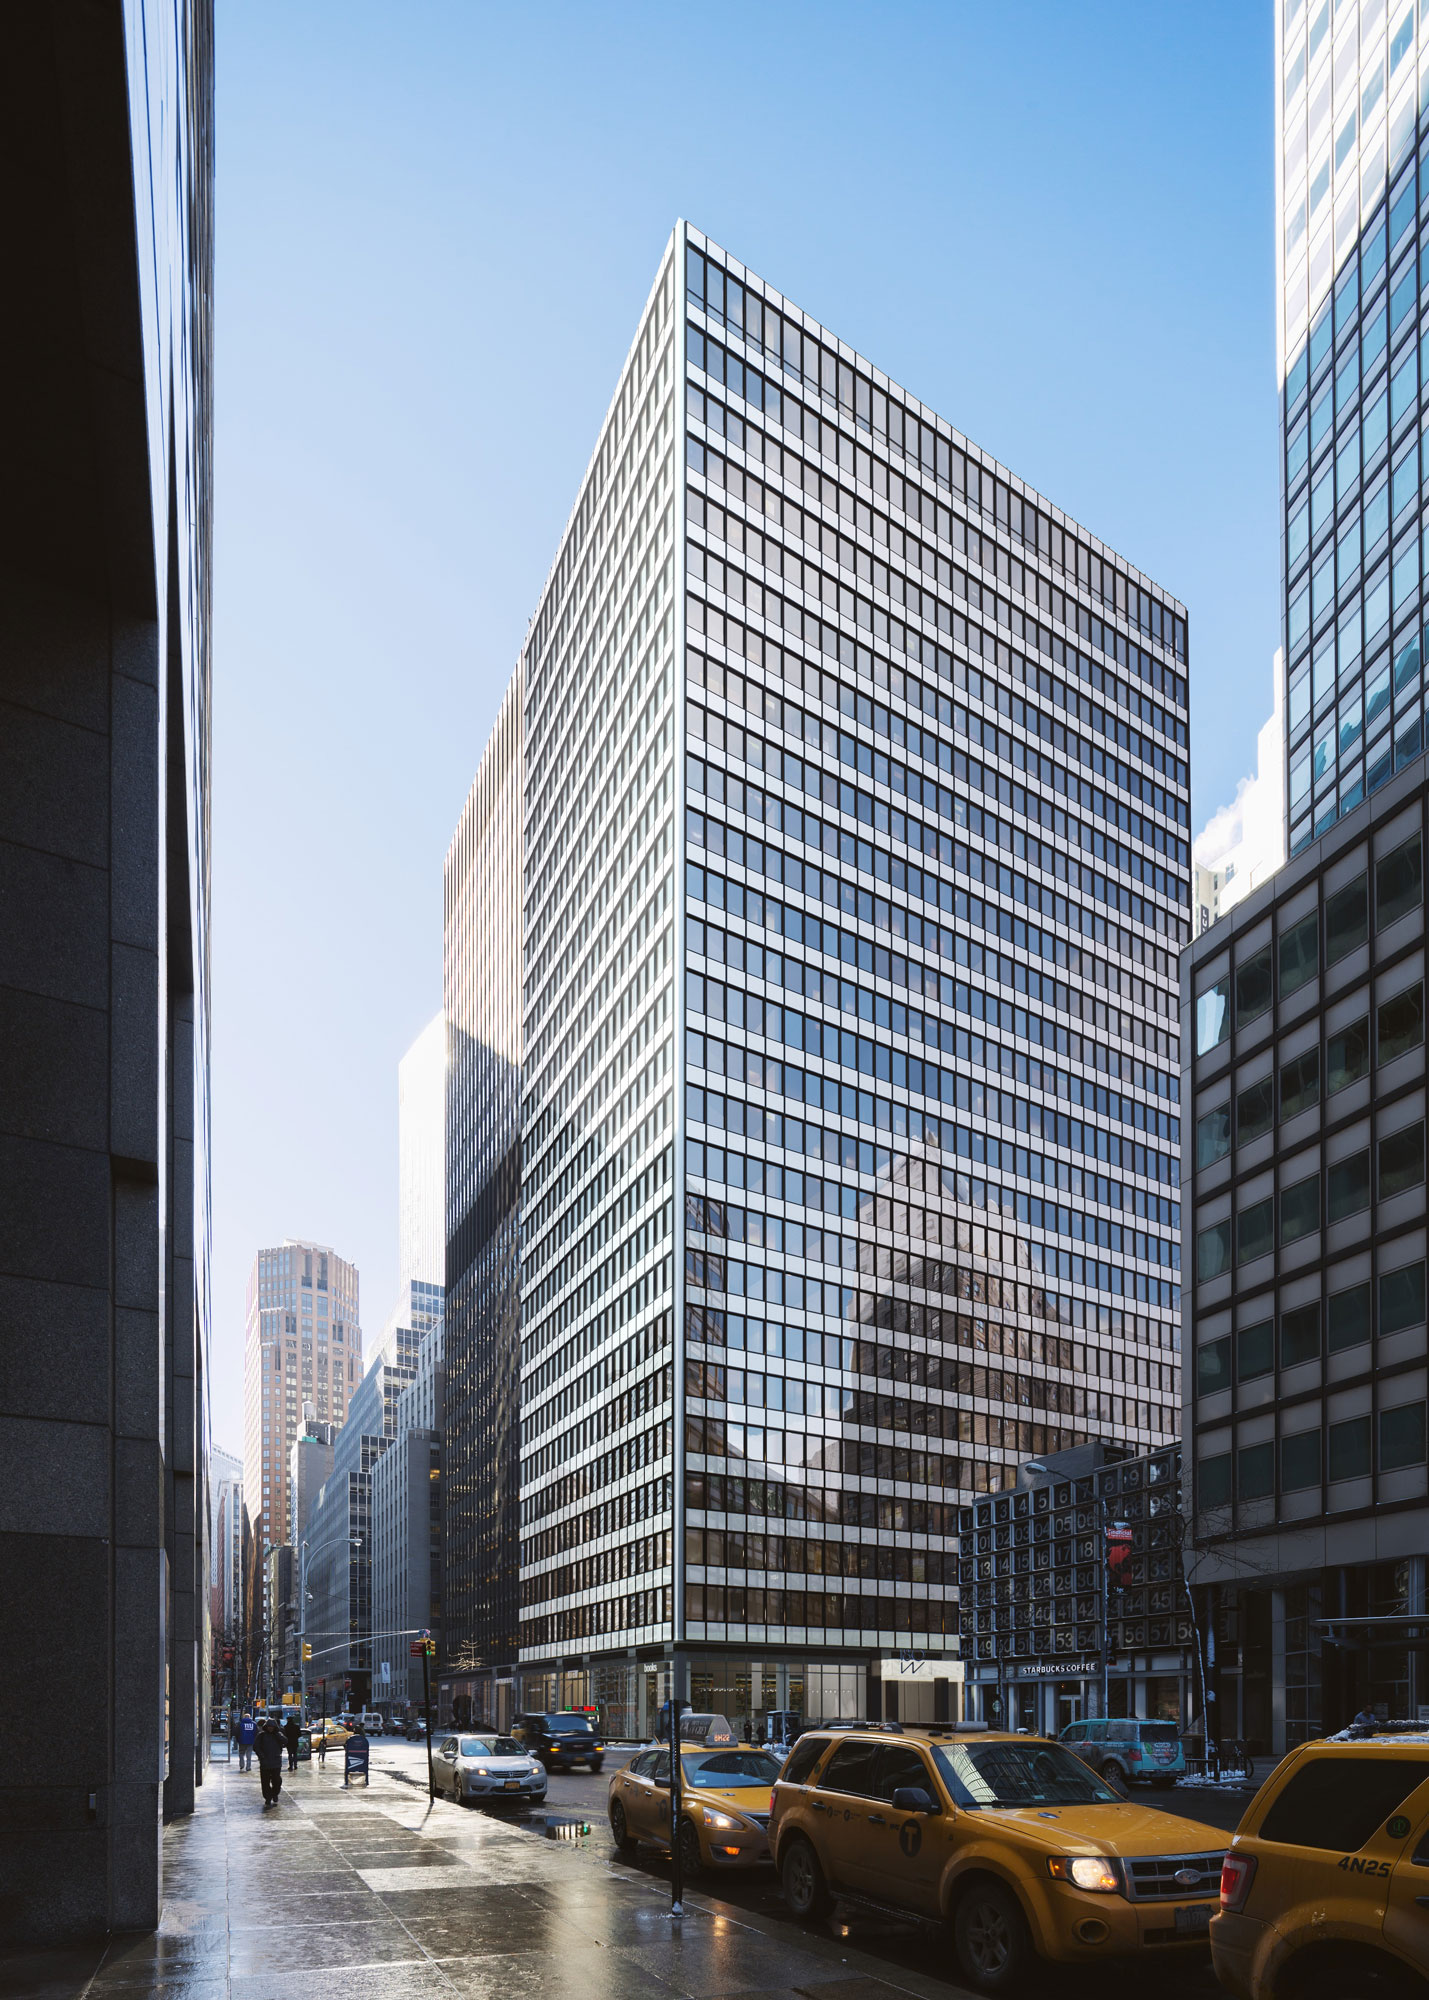 Architectural Rendering of the exterior of the 180 Water Street project located in the Financial District, New York City